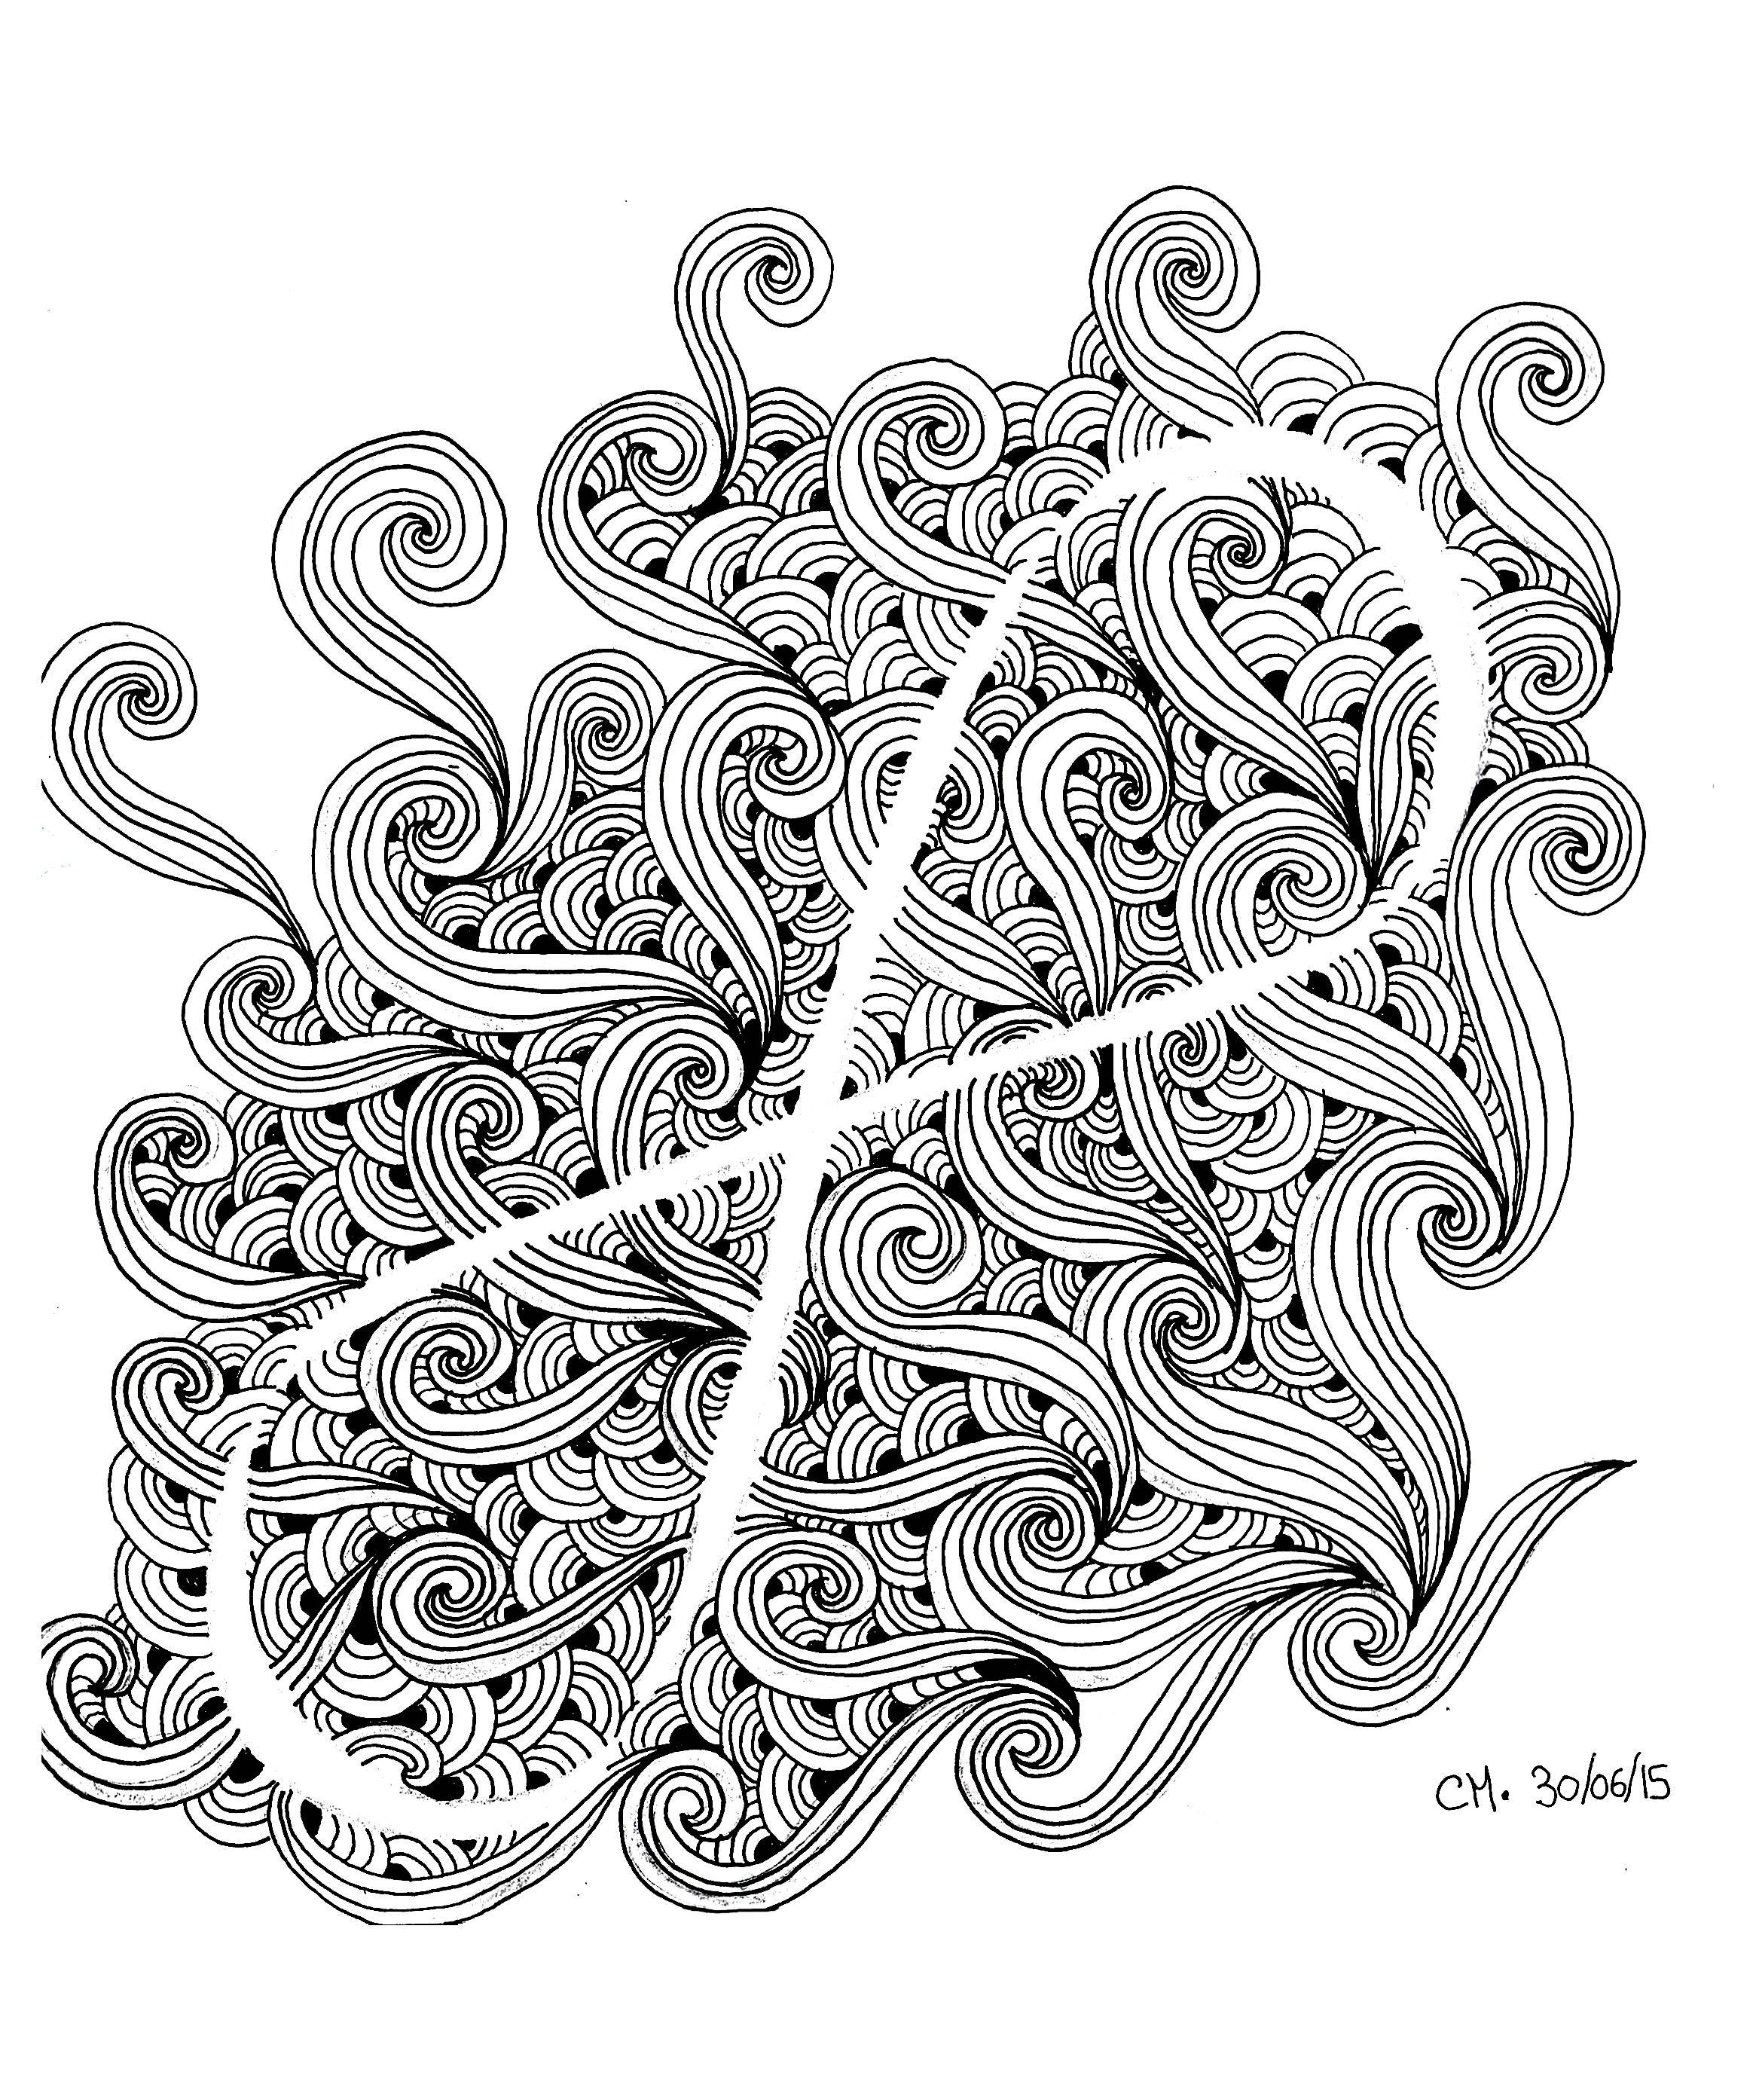 Zentangle by cathym 12